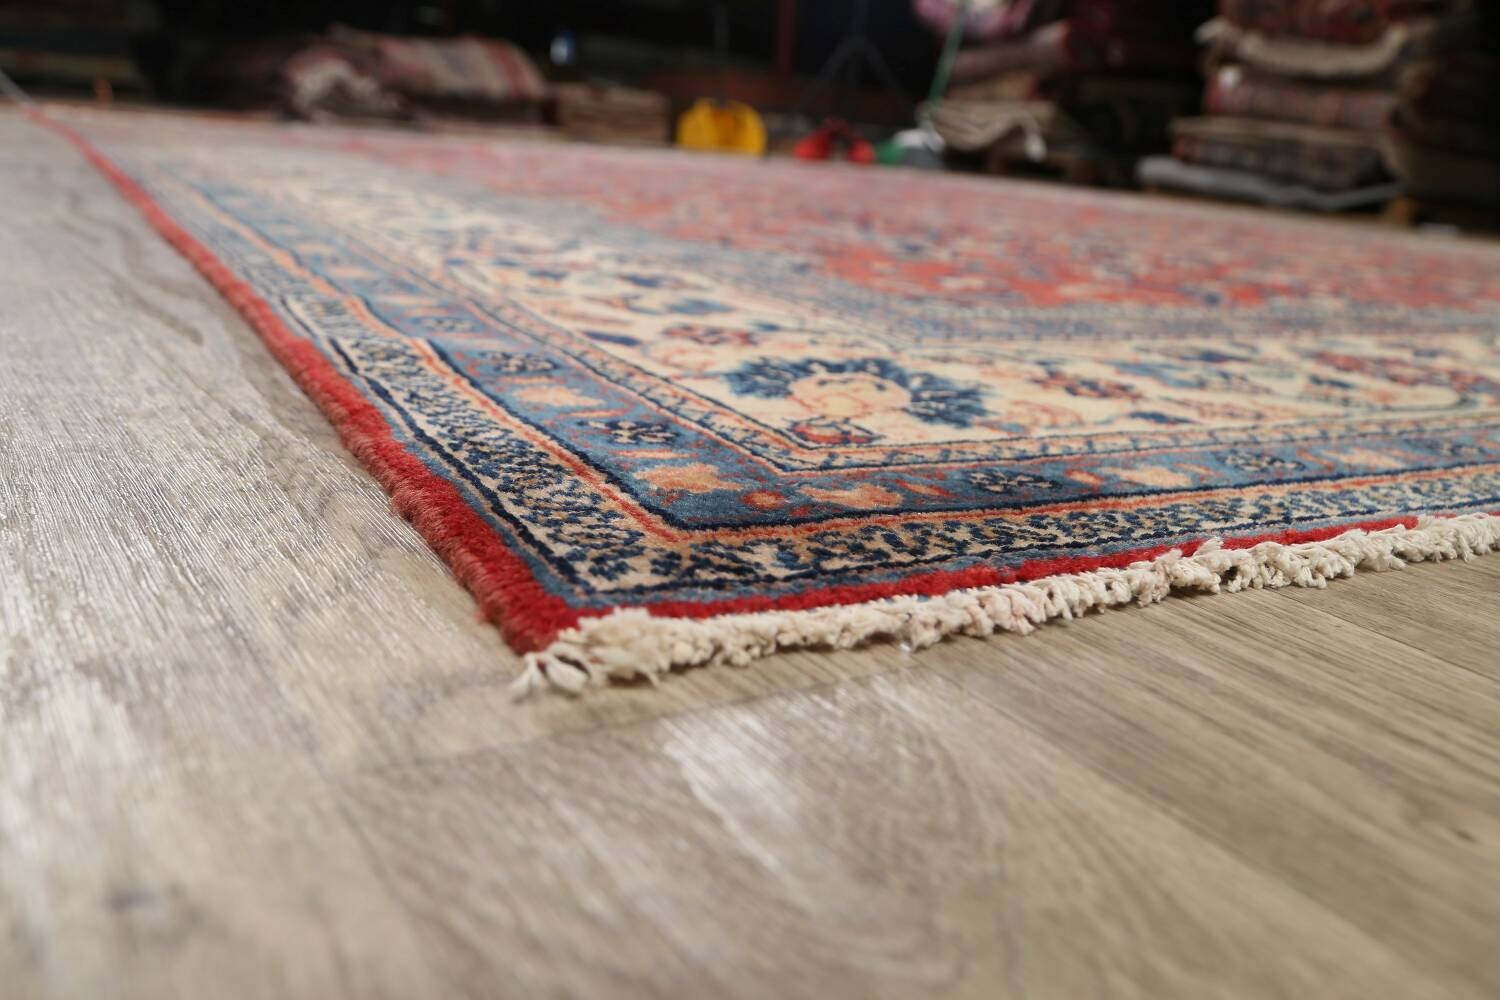 Antique Floral Mahal Persian Area Rug 10x14 image 6